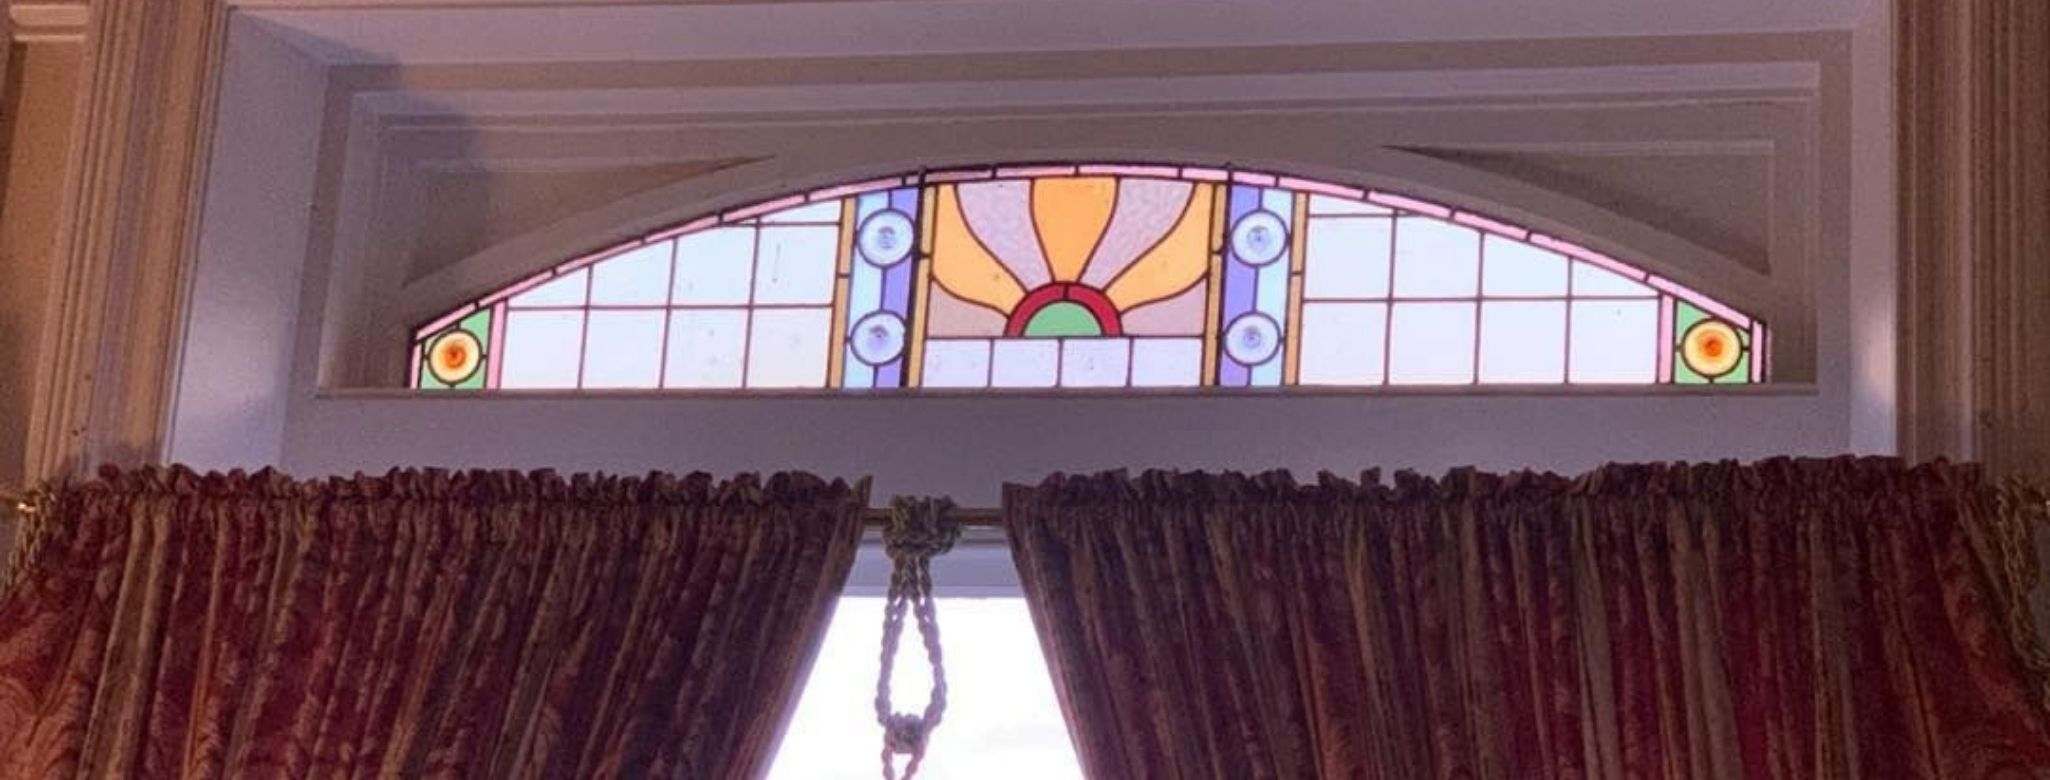 A Colourful Leadlight Panel, Just One Of The Original Features At The Historic Penghana Bed And Breakfast In Queenstown, Tasmania